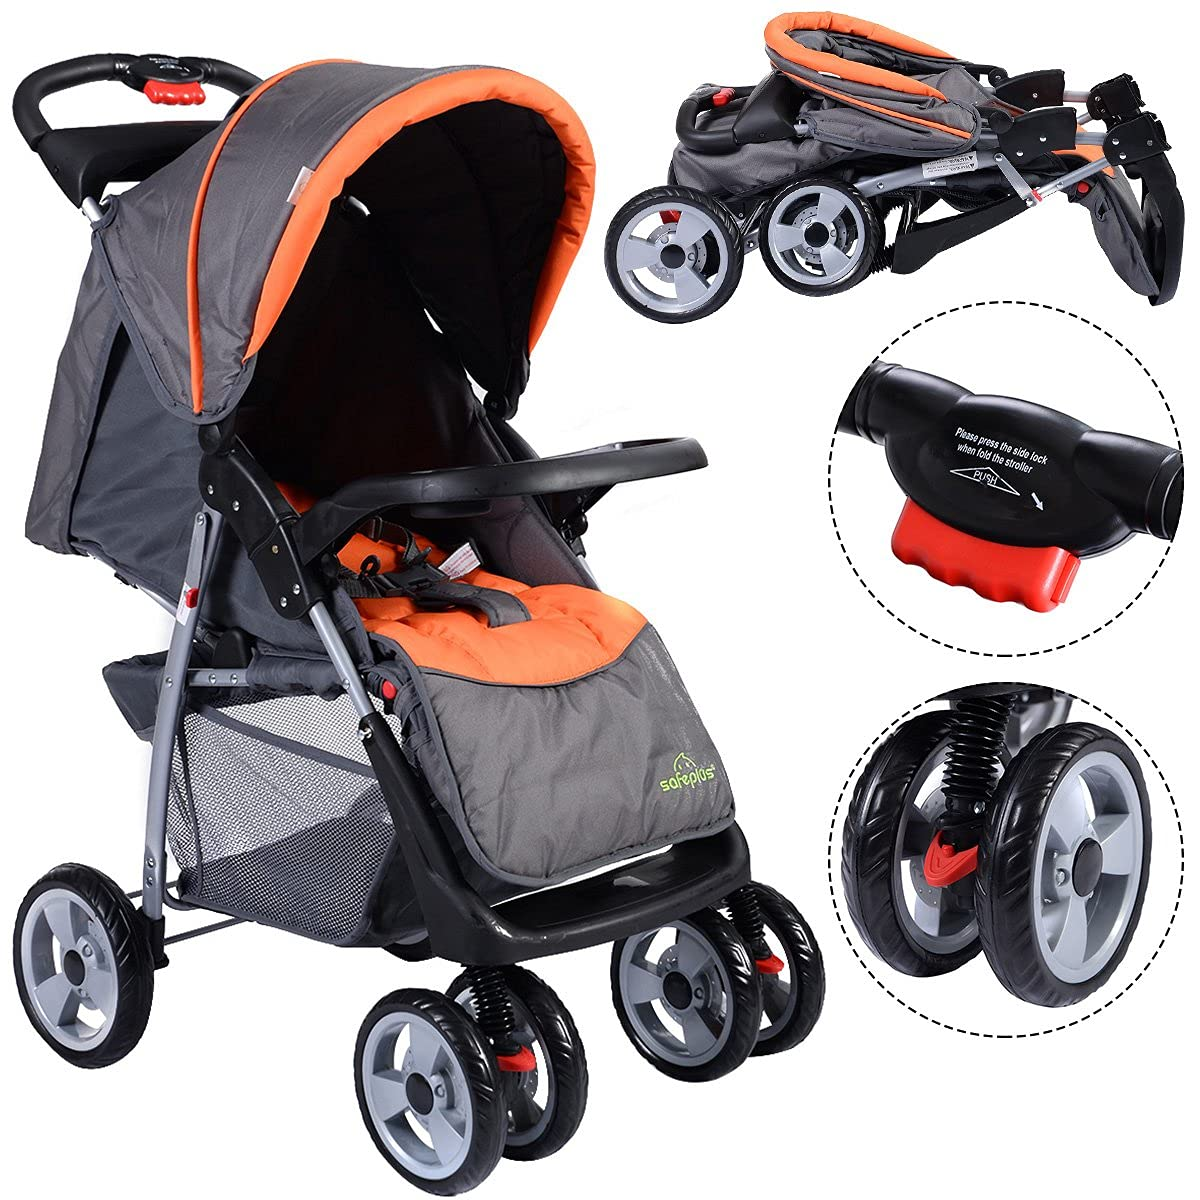 HOMGX Baby Stroller with Three Adjustable Positions, Lightweight Easy Fold Compact Travel Stroller with Lockable Wheels, 2 in 1 Baby Stroller, Includes Child Tray, Cup Holder, Storage Basket (Gray)